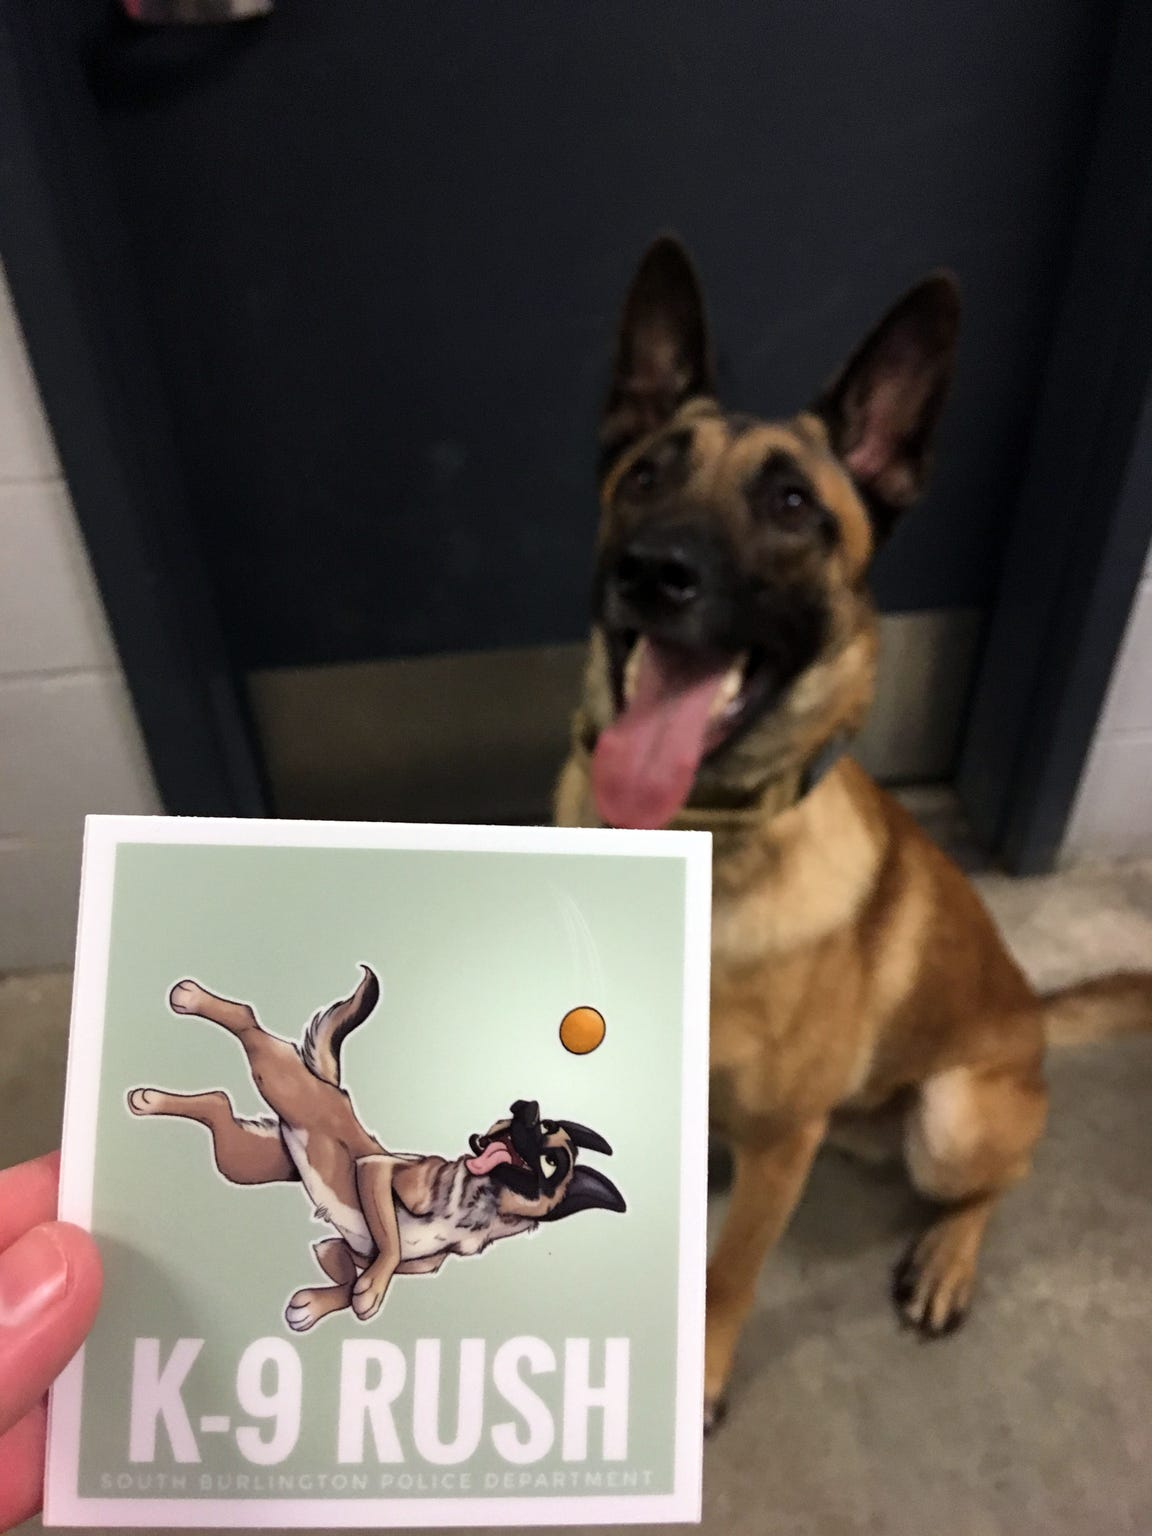 K9 Rush poses with a sticker made showing him in cartoon form. His handler, South Burlington Police Officer Sarah Bellavance, hands the stickers out to people in the community, she said.